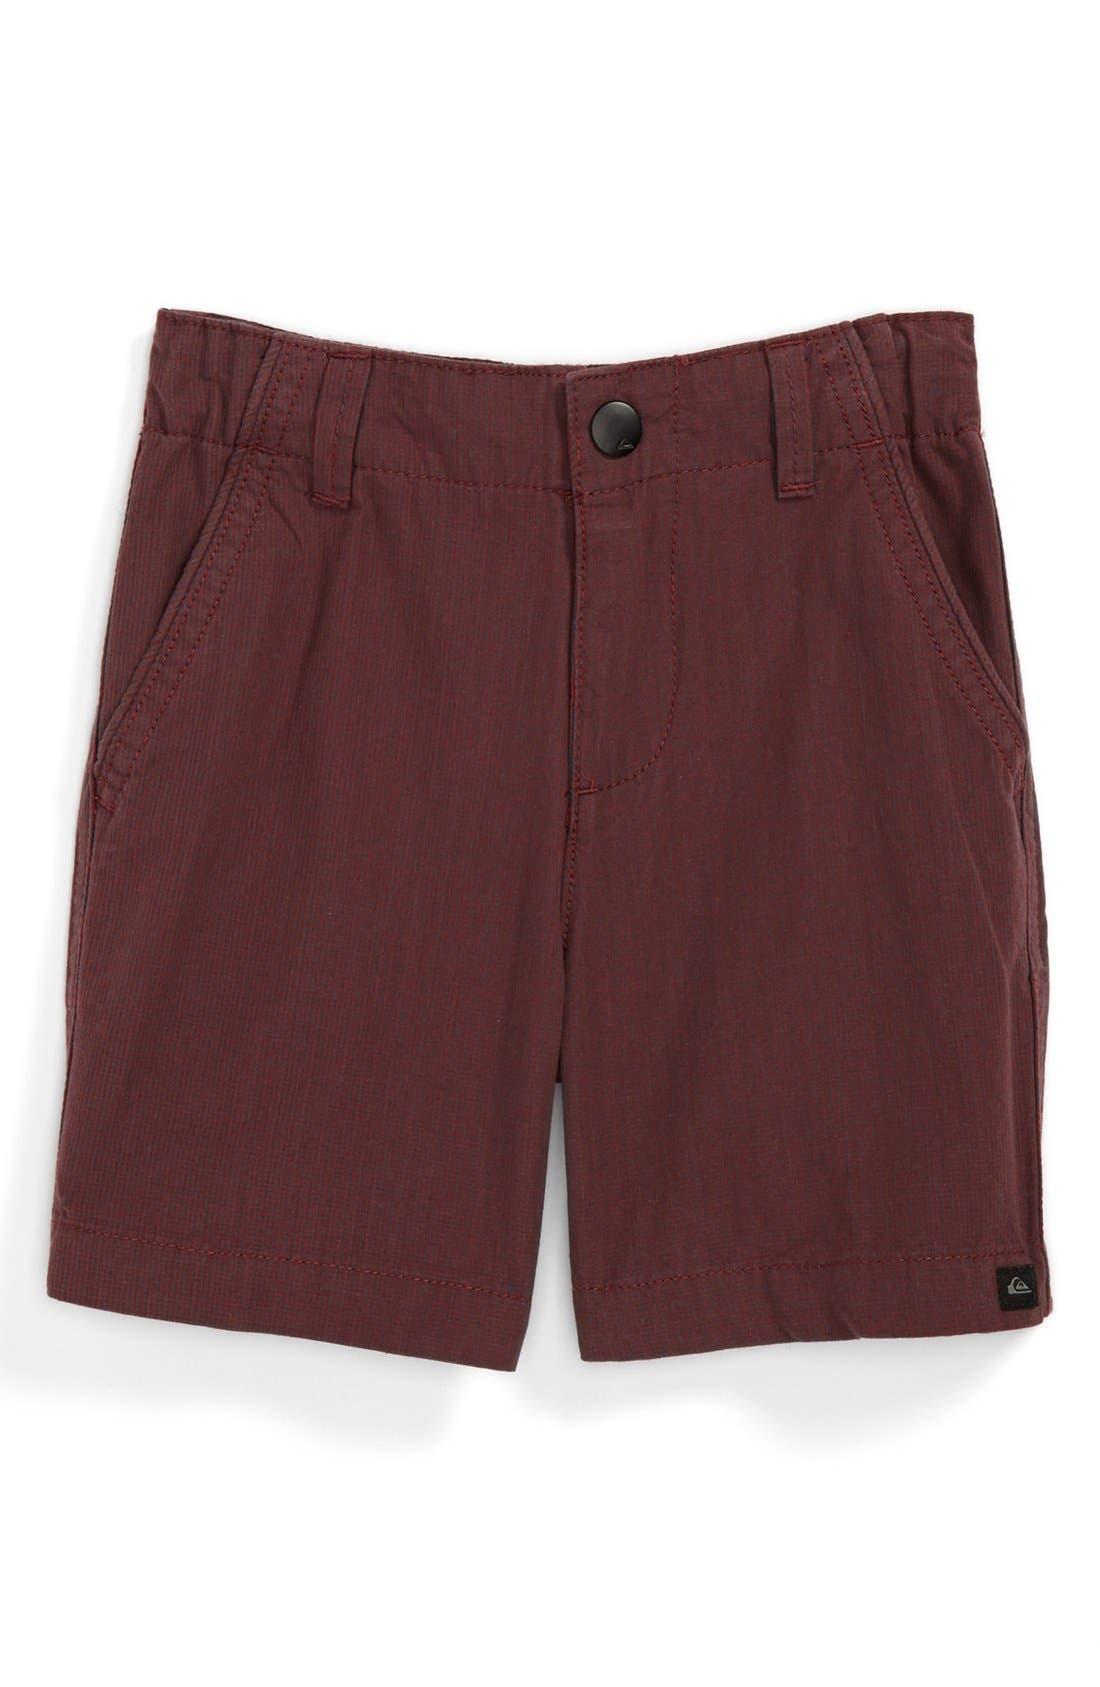 Main Image - Quiksilver 'Nugget' Shorts (Baby Boys)